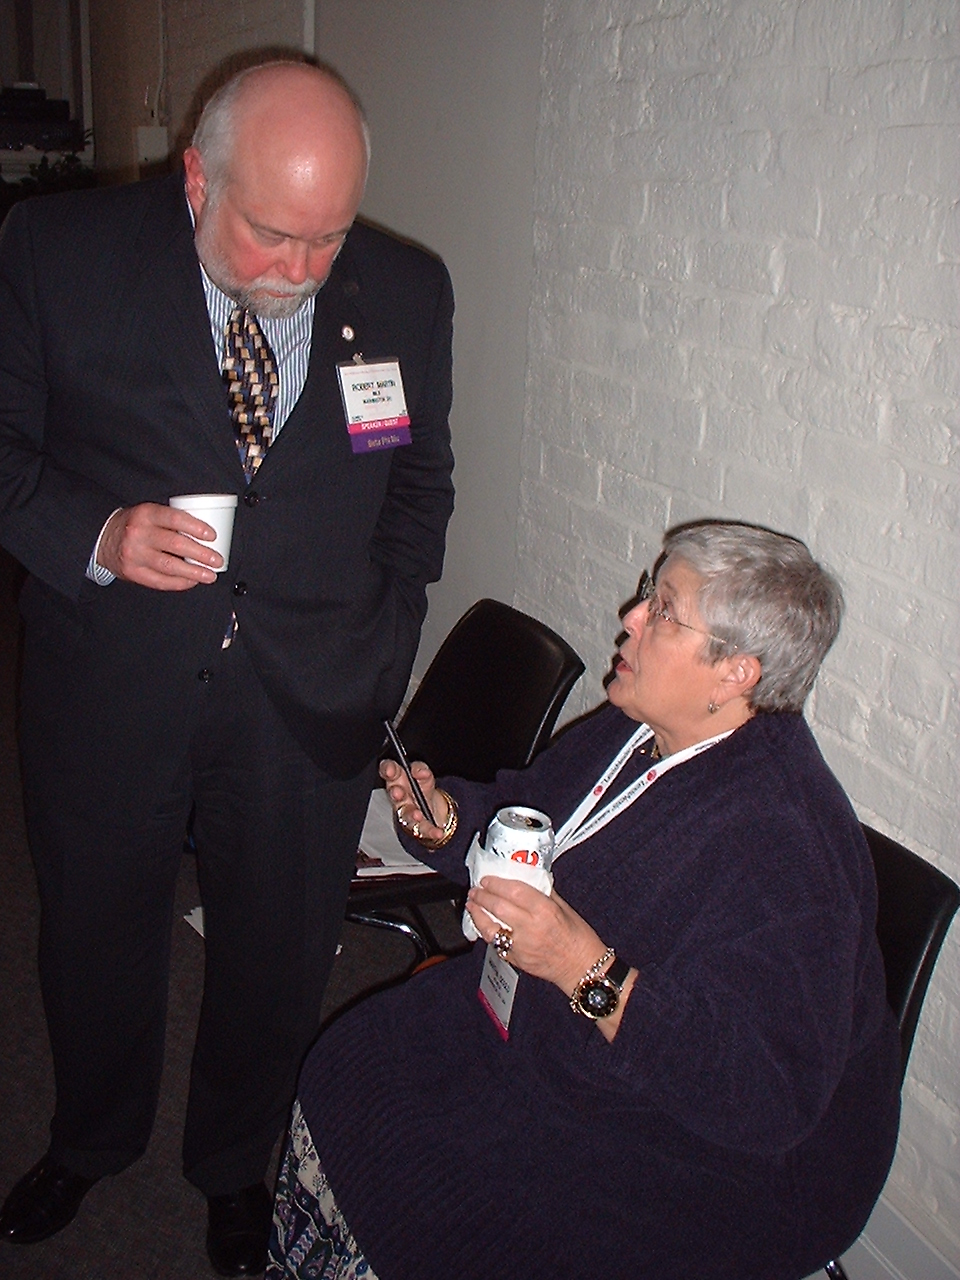 Bob Martin (IMLS) and Commissioner Gould at American Library Association Meeting in New Orleans